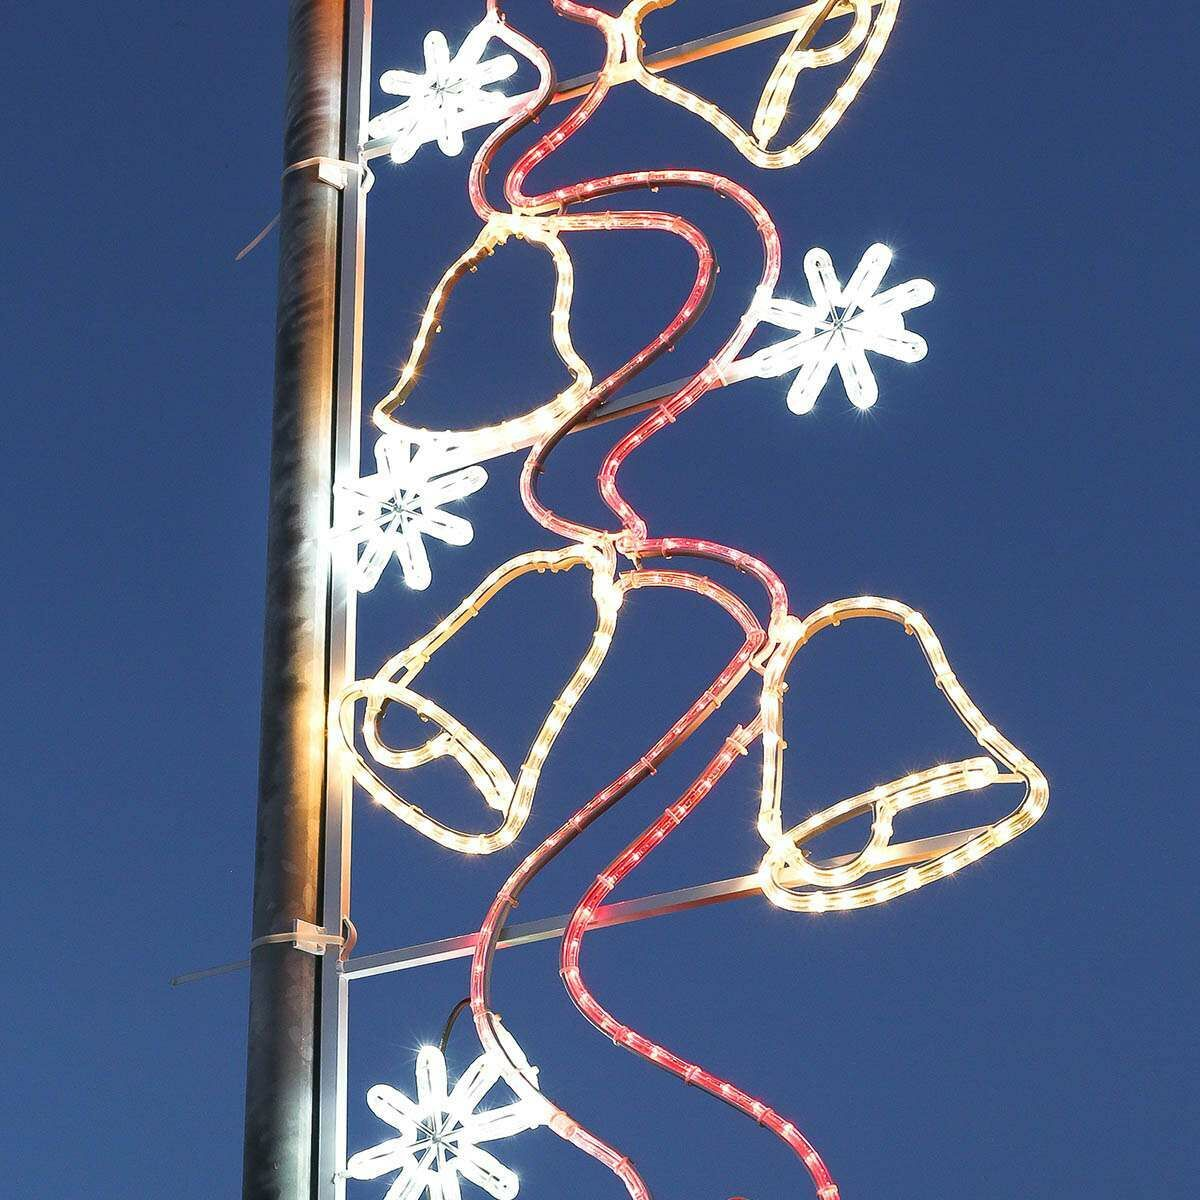 2m Aluminium Outdoor Rope Light Christmas Bells With Stars Motif Twinkle Leds